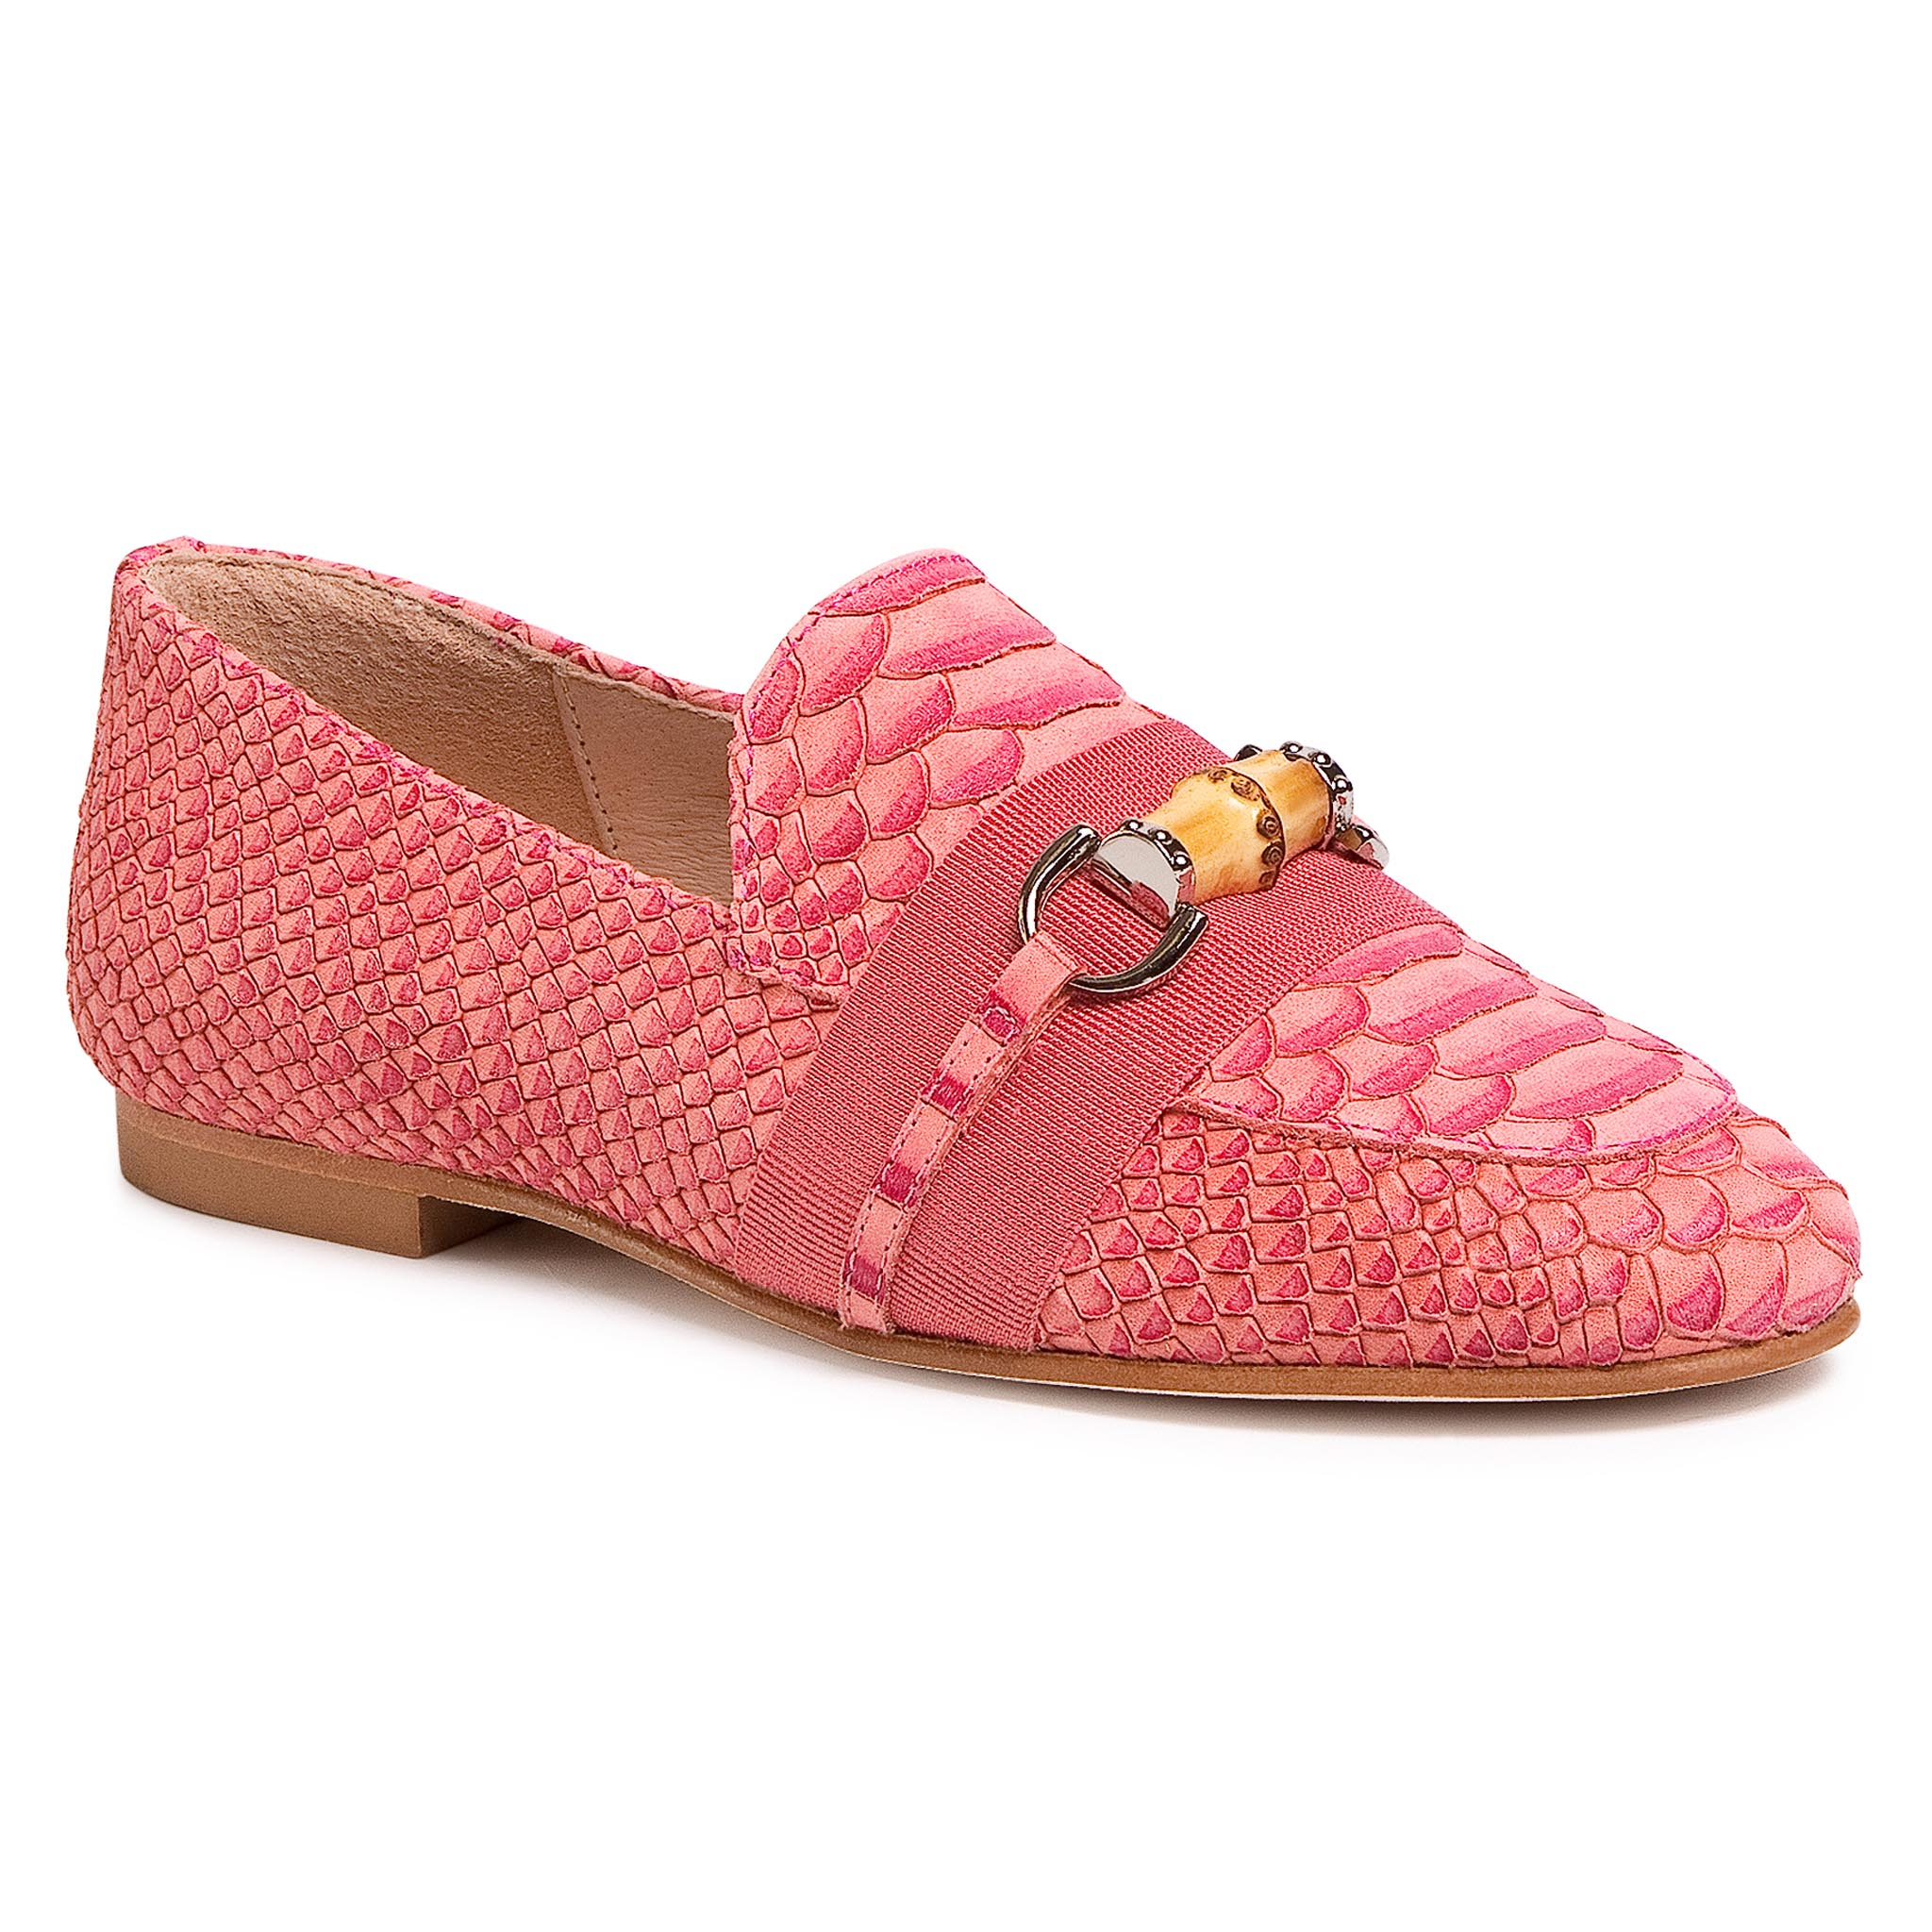 Loafers HEGO'S MILANO - 1230 Sabbia